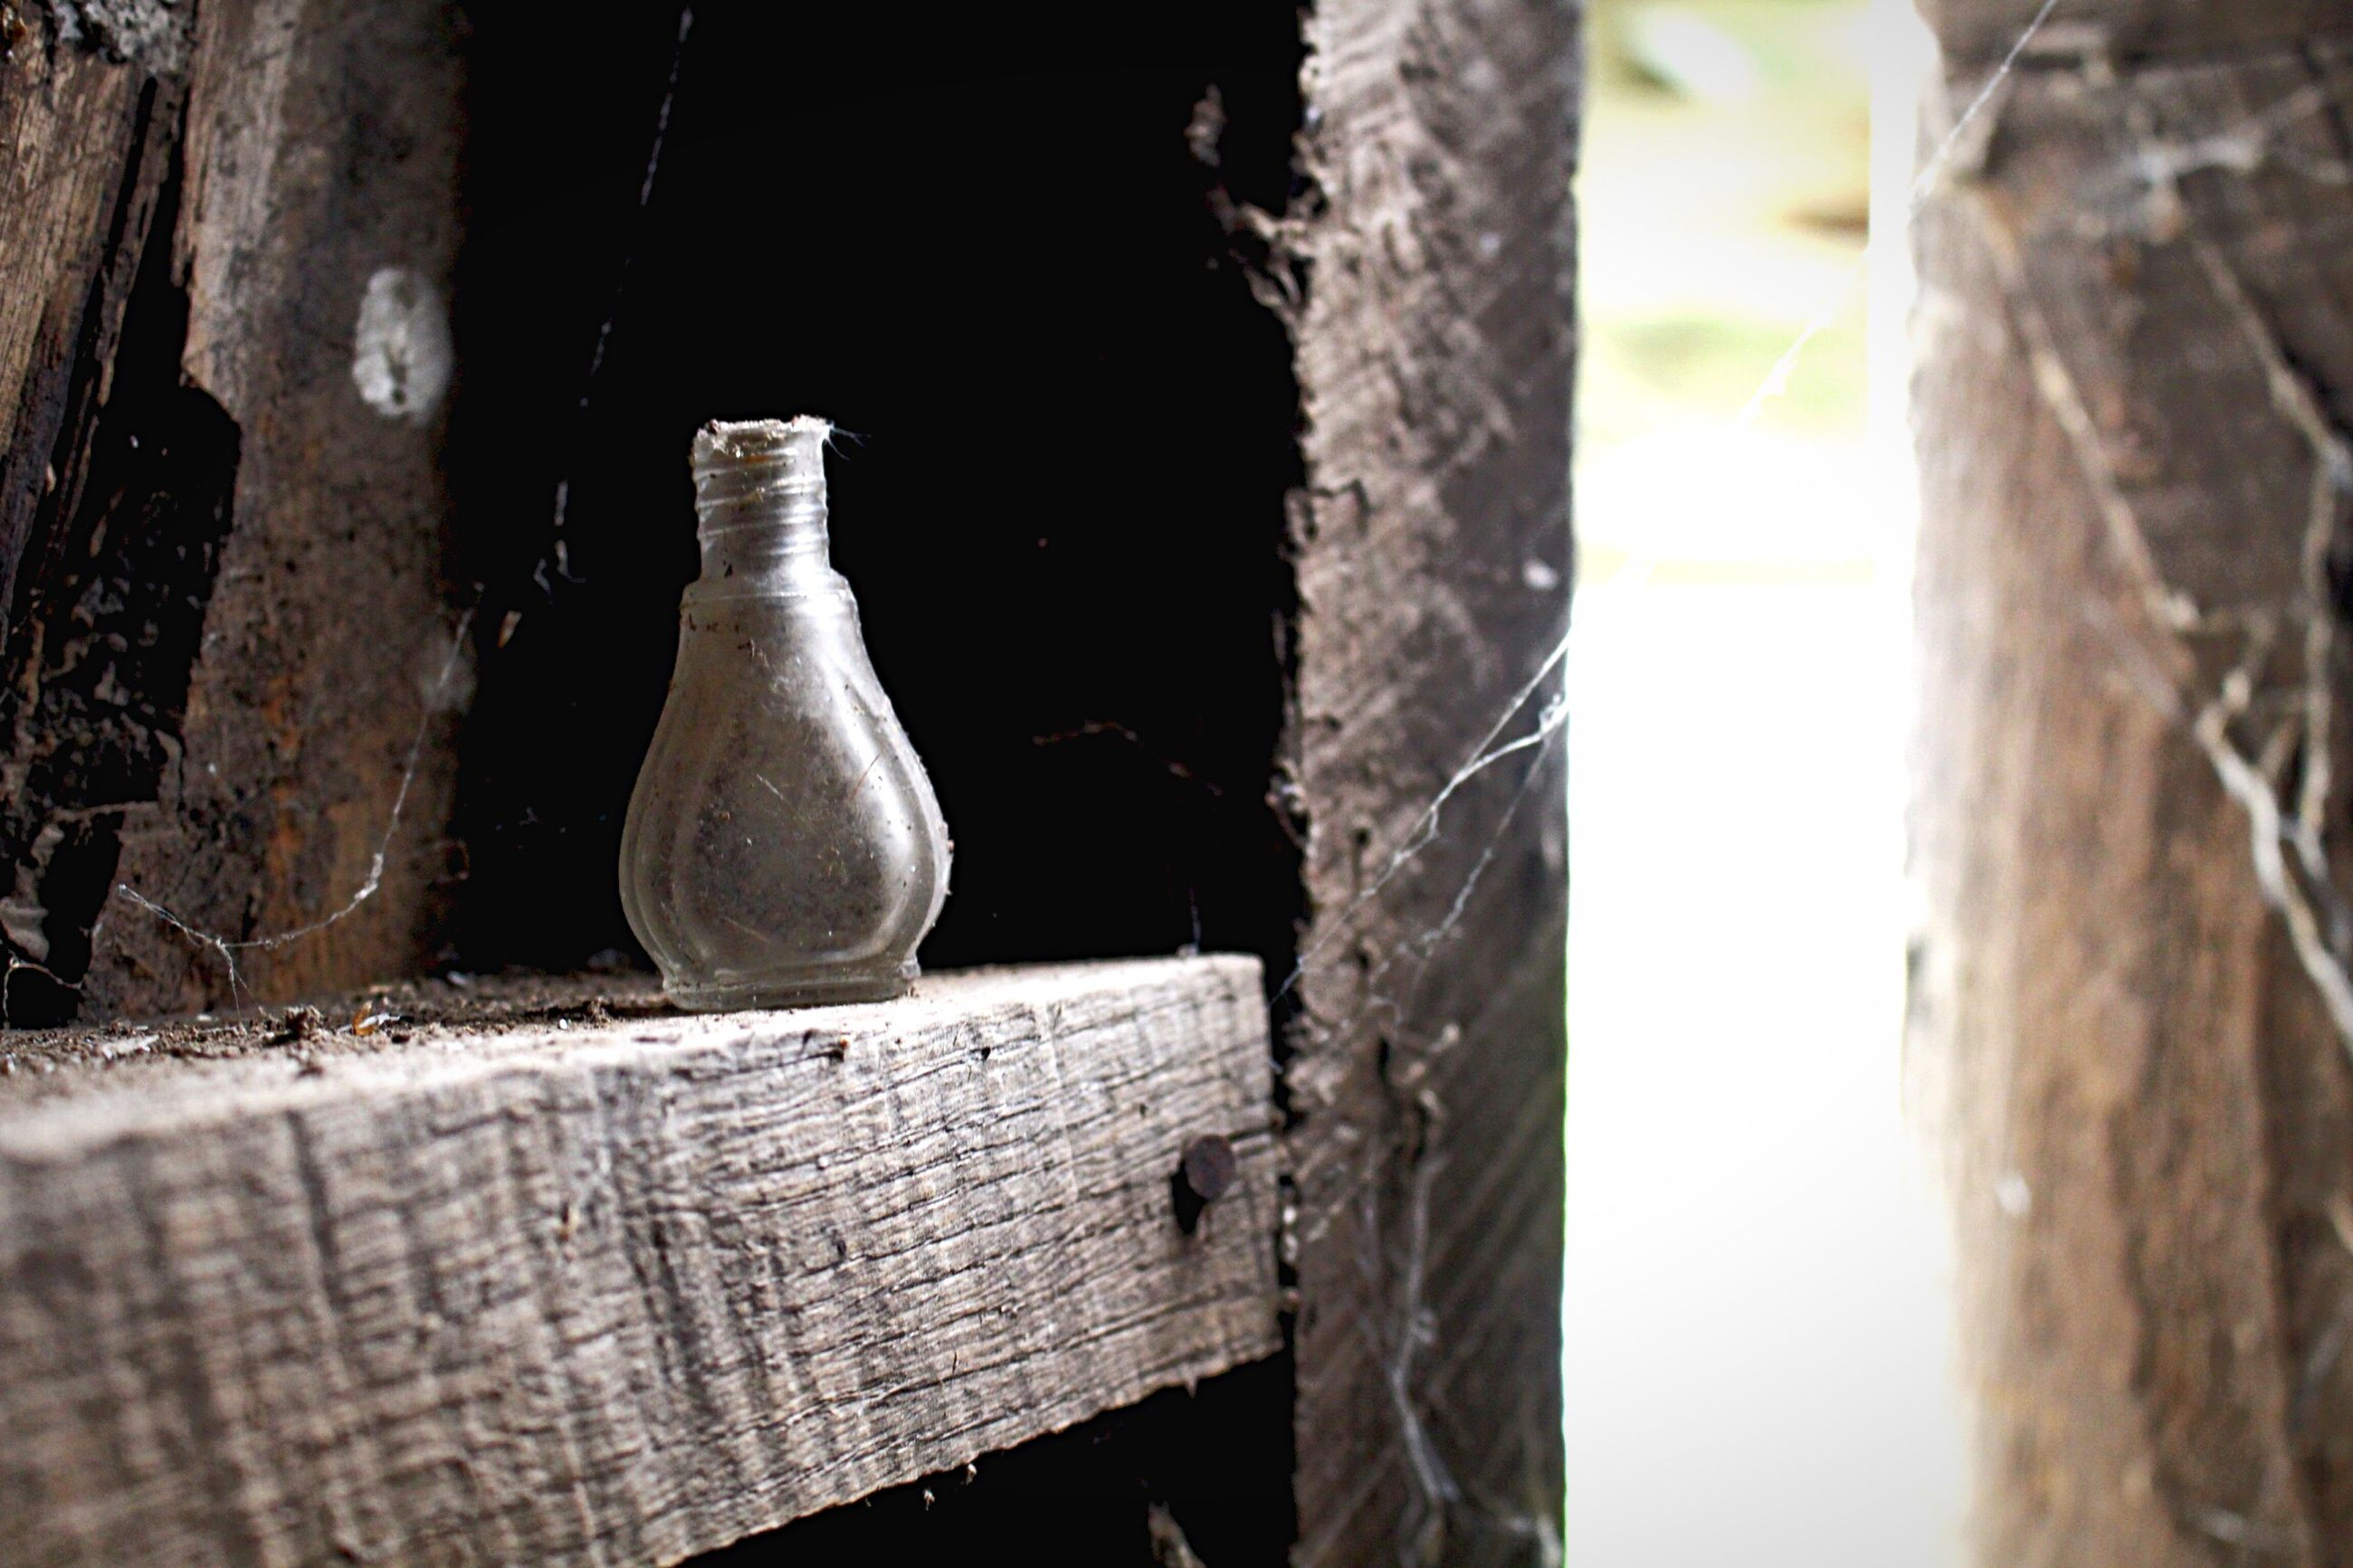 close-up, old, focus on foreground, metal, wood - material, hanging, wall - building feature, built structure, day, no people, old-fashioned, outdoors, selective focus, still life, abandoned, wall, rusty, damaged, architecture, weathered